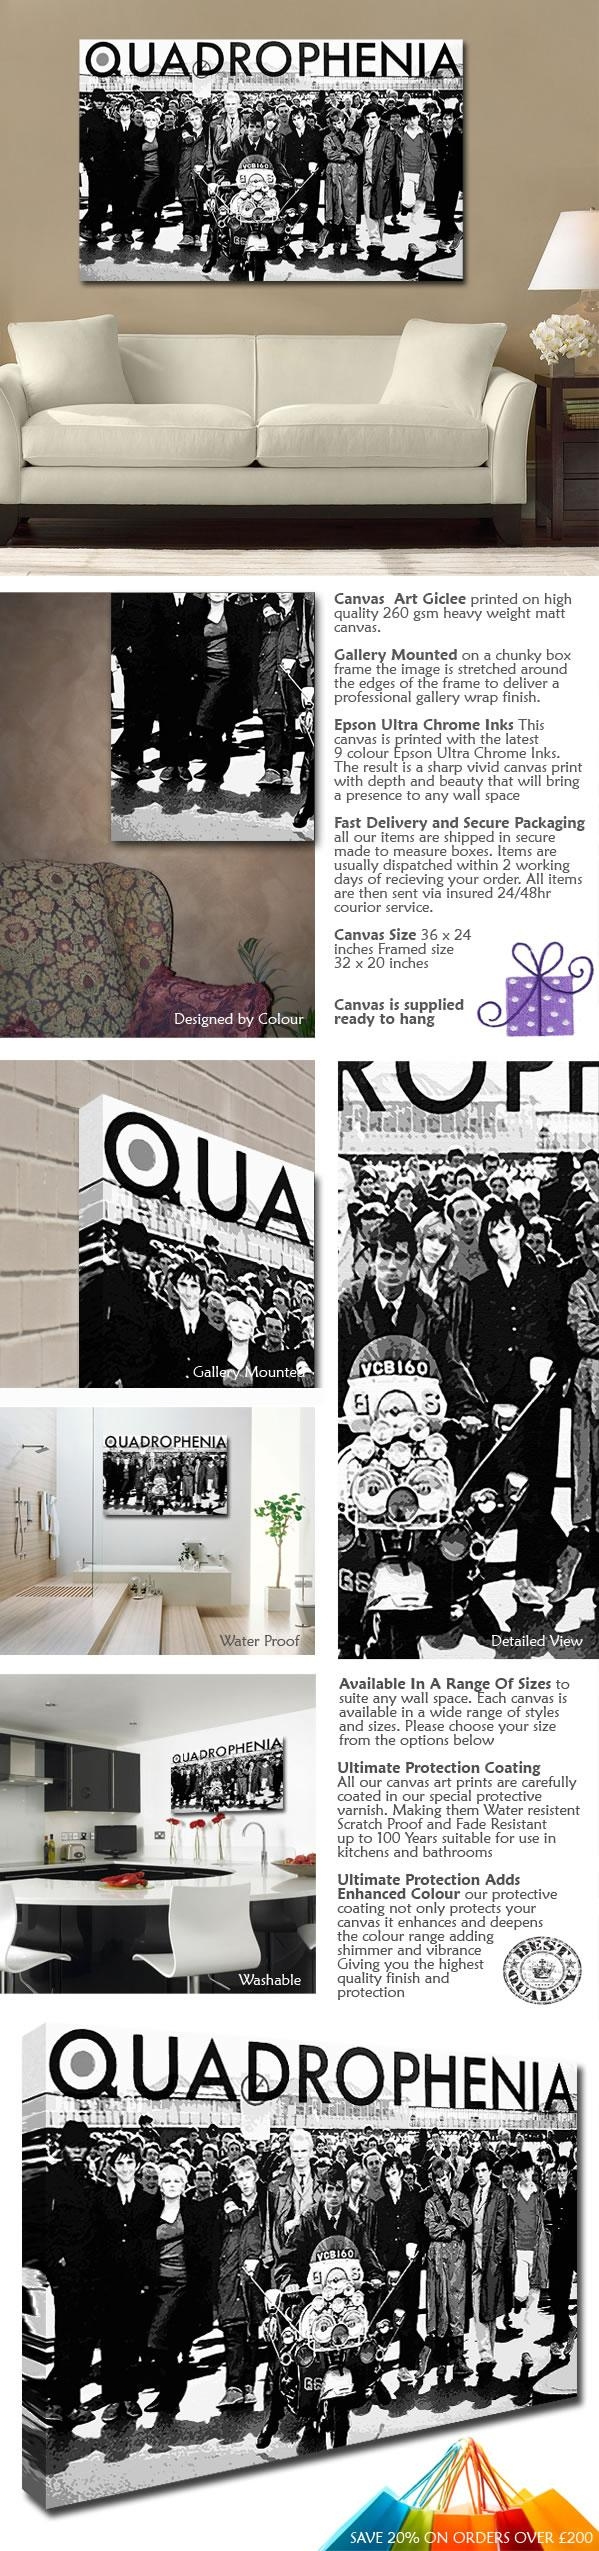 Quadrophenia Canvas Regarding Quadrophenia Wall Art (View 16 of 23)